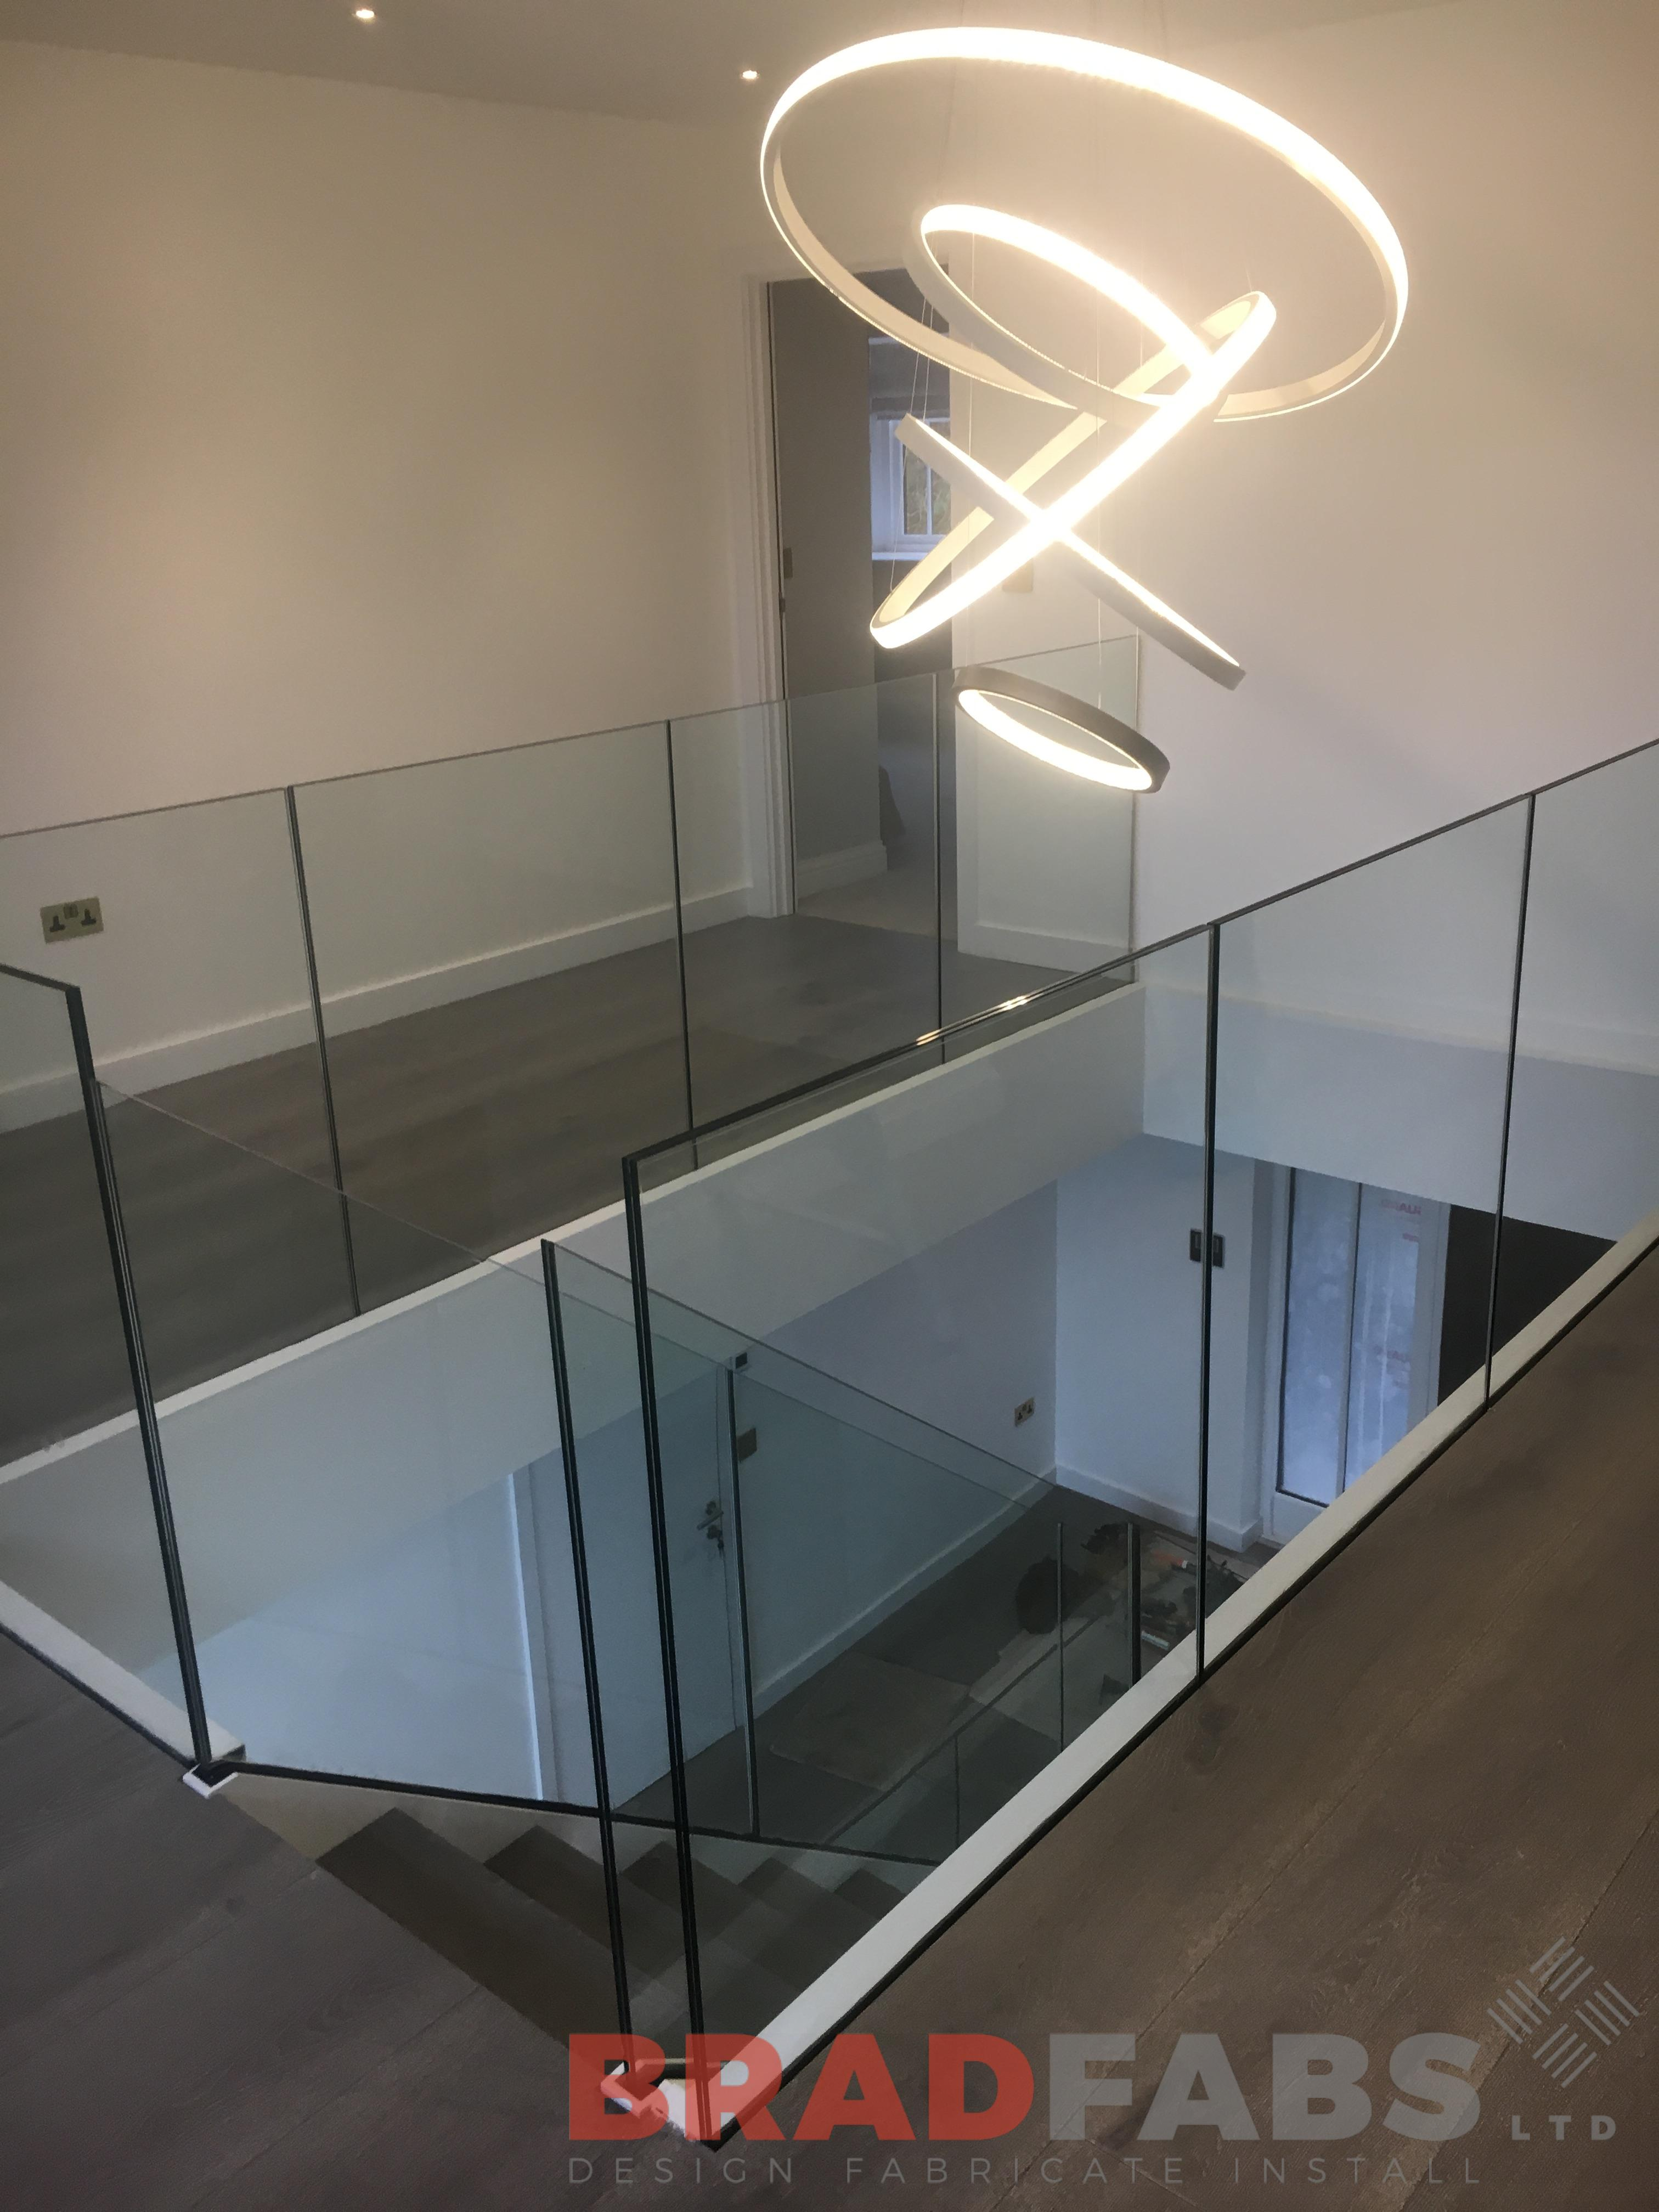 frameless glass balustrade installed by Bradfabs